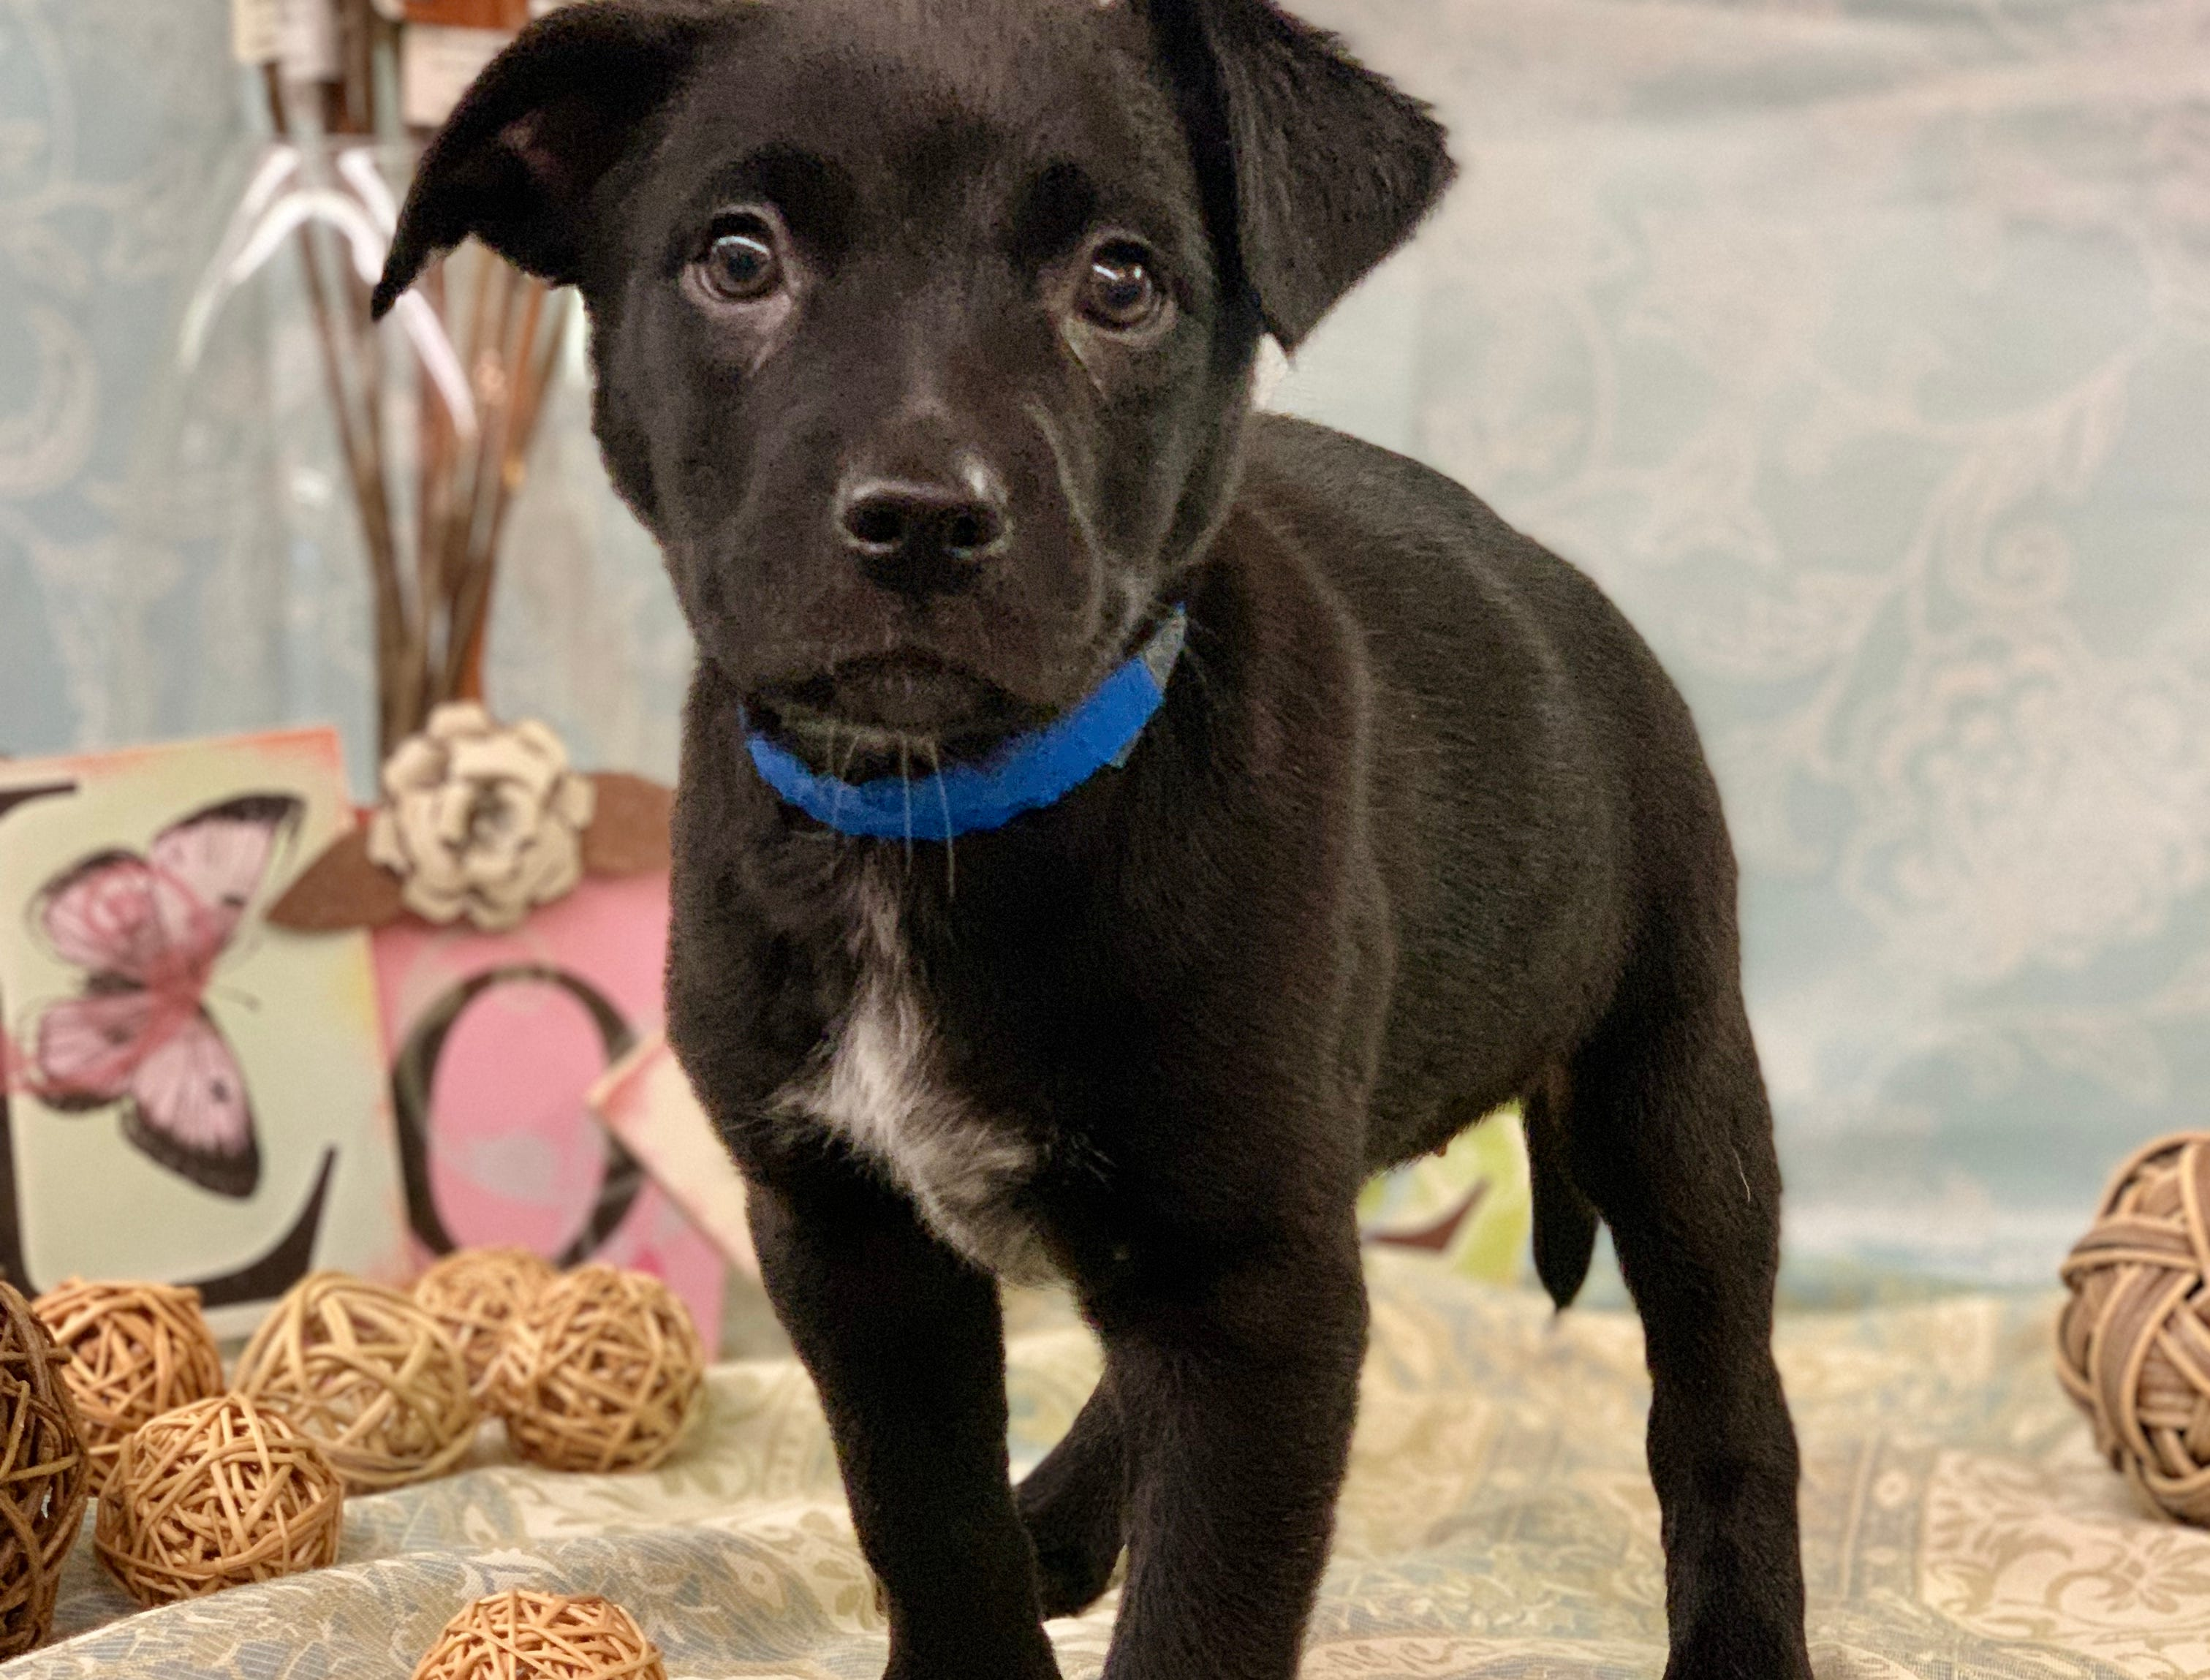 Cookie Monster is an 8-pound, 11-week-old, female, heeler and pit bull mix. She's being house trained and is good with other dogs and cats. She and her seven siblings are available for adoption. Visit Tails of Rescue Adoption Center, 981 Lake Blvd., Redding. Call 448-7444. Go to http://tailsofrescue.org.